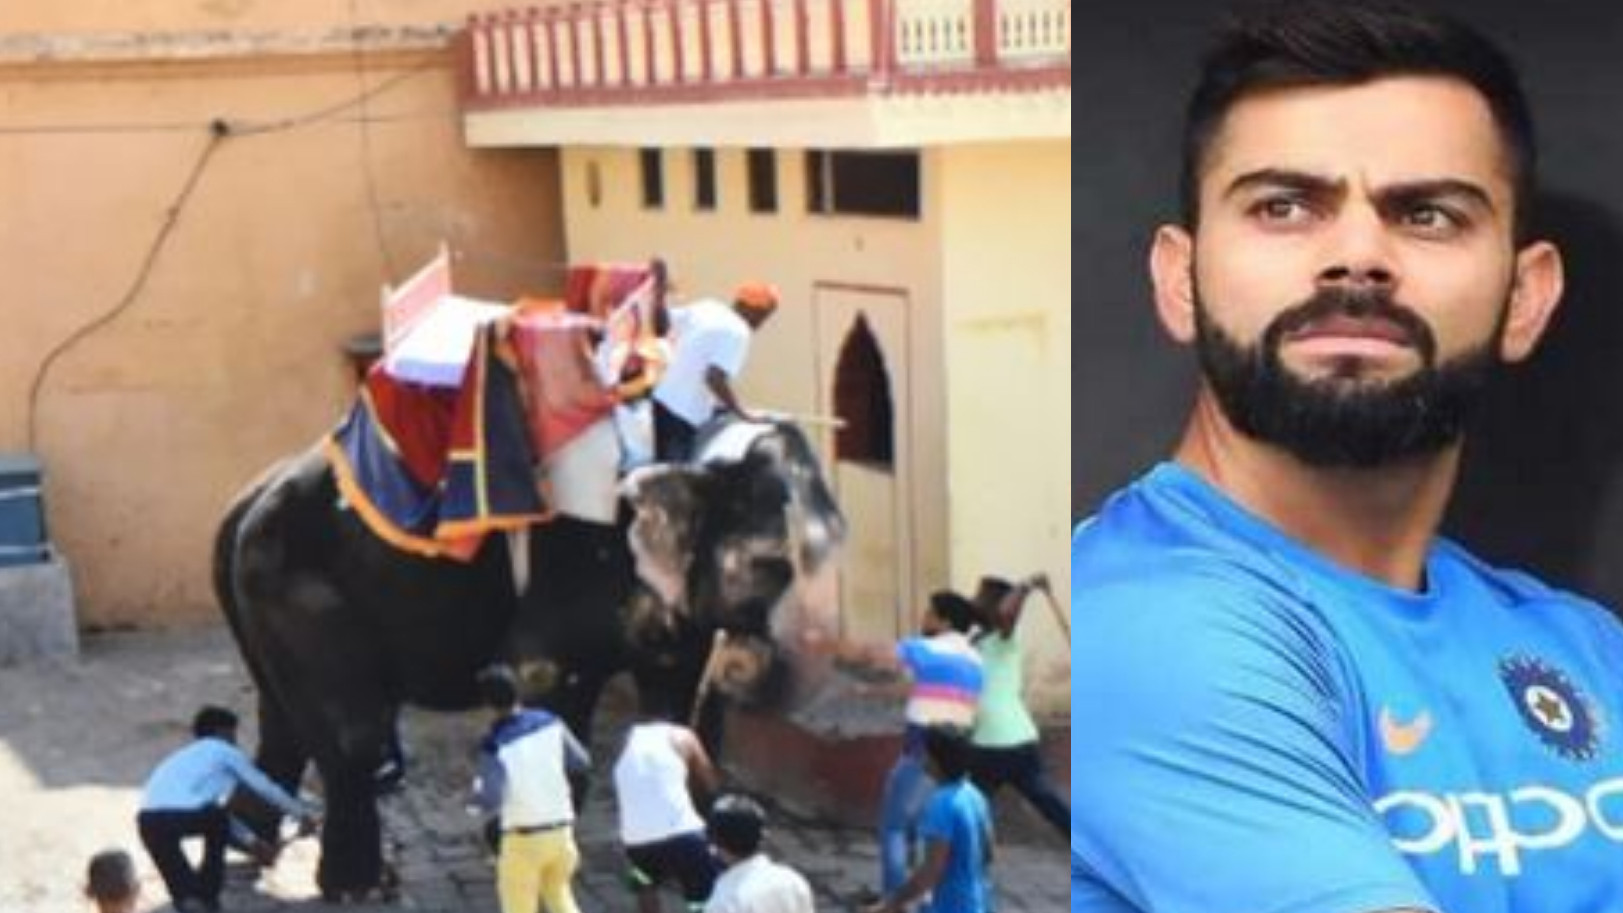 Virat Kohli backs PETA's call for relocation of Jaipur's Elephant no. 44